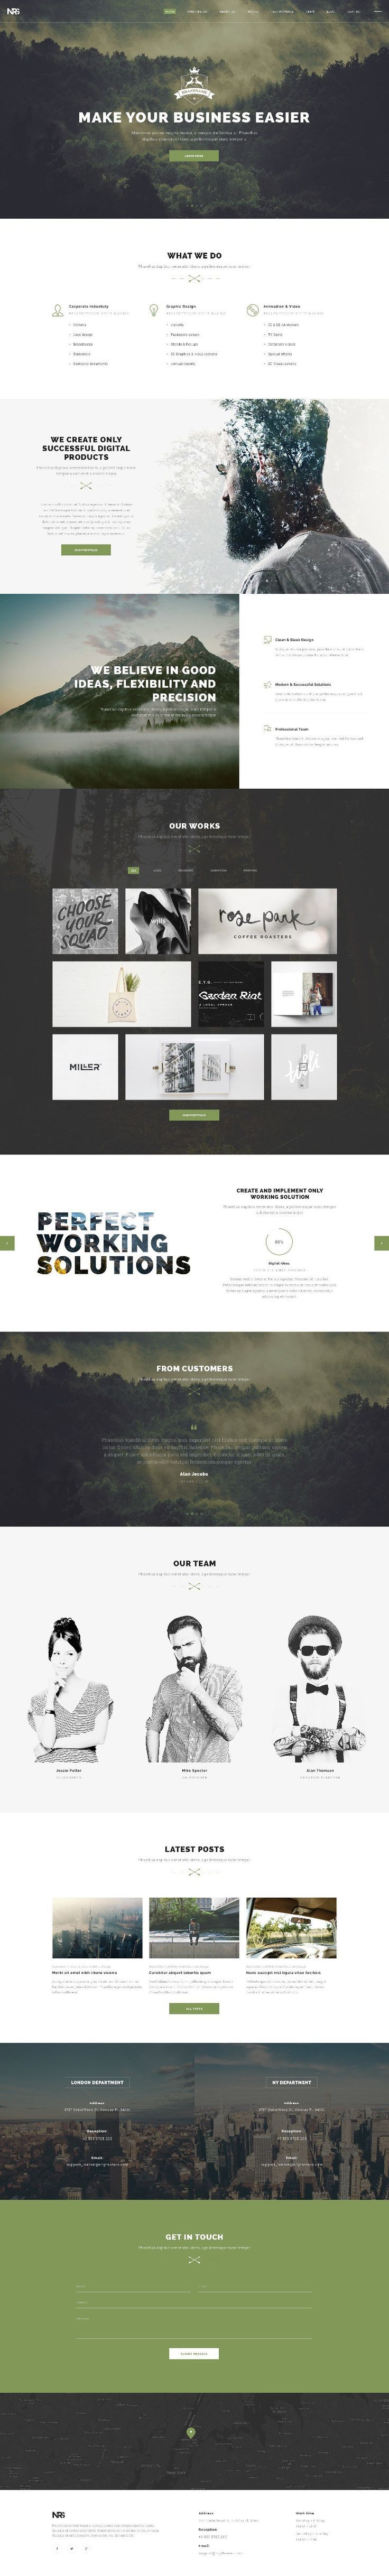 NRG Web Design Inspiration 4 If Youre A User Experience Professional Listen